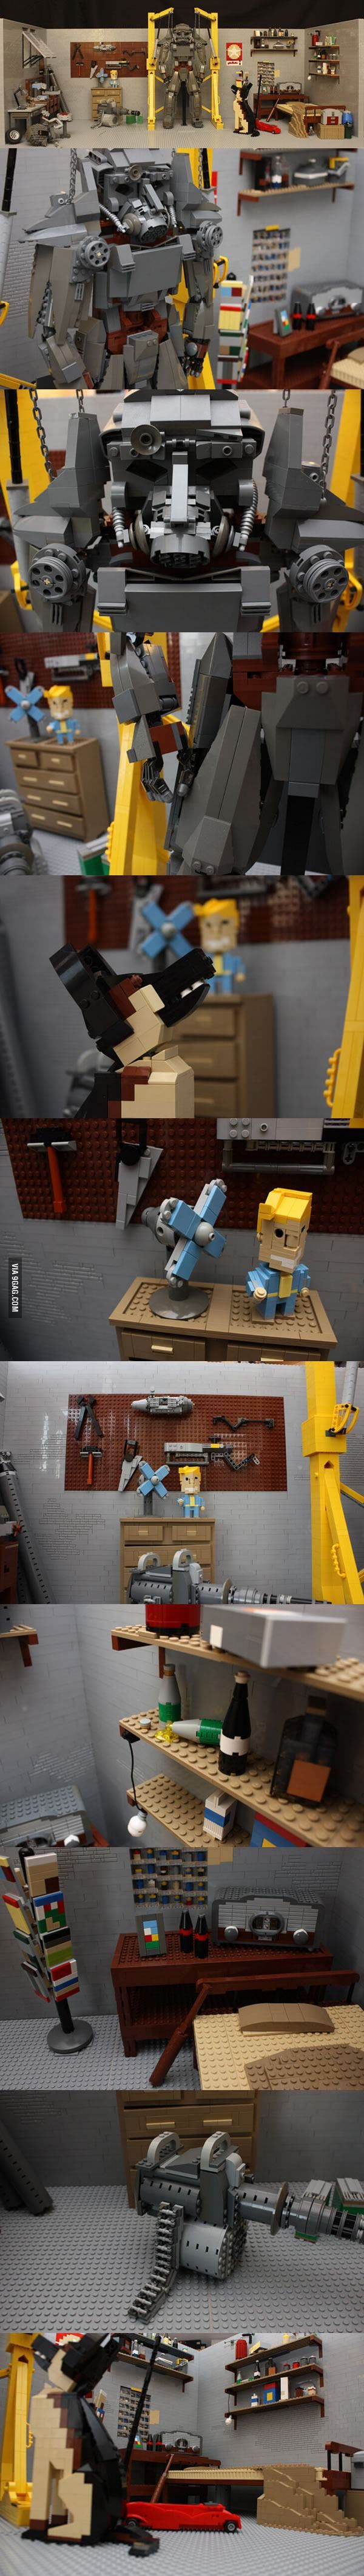 Fallout 4 Lego - Power Armour and Dogmeat